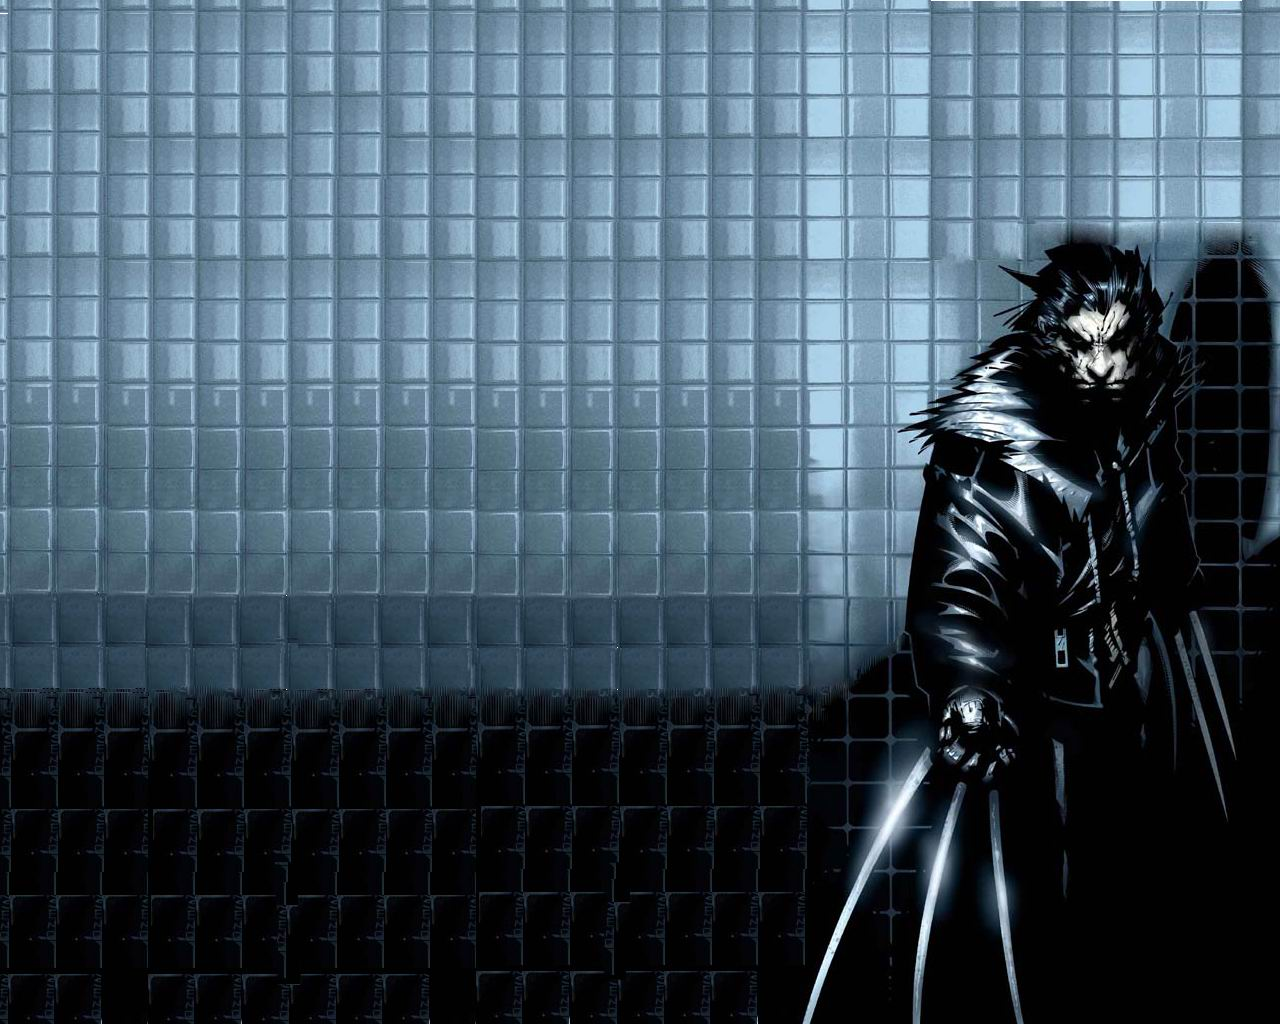 Joker Quotes Hd Wallpapers 1080p Latest 35 Wolverine Hd Wallpapers For Pc